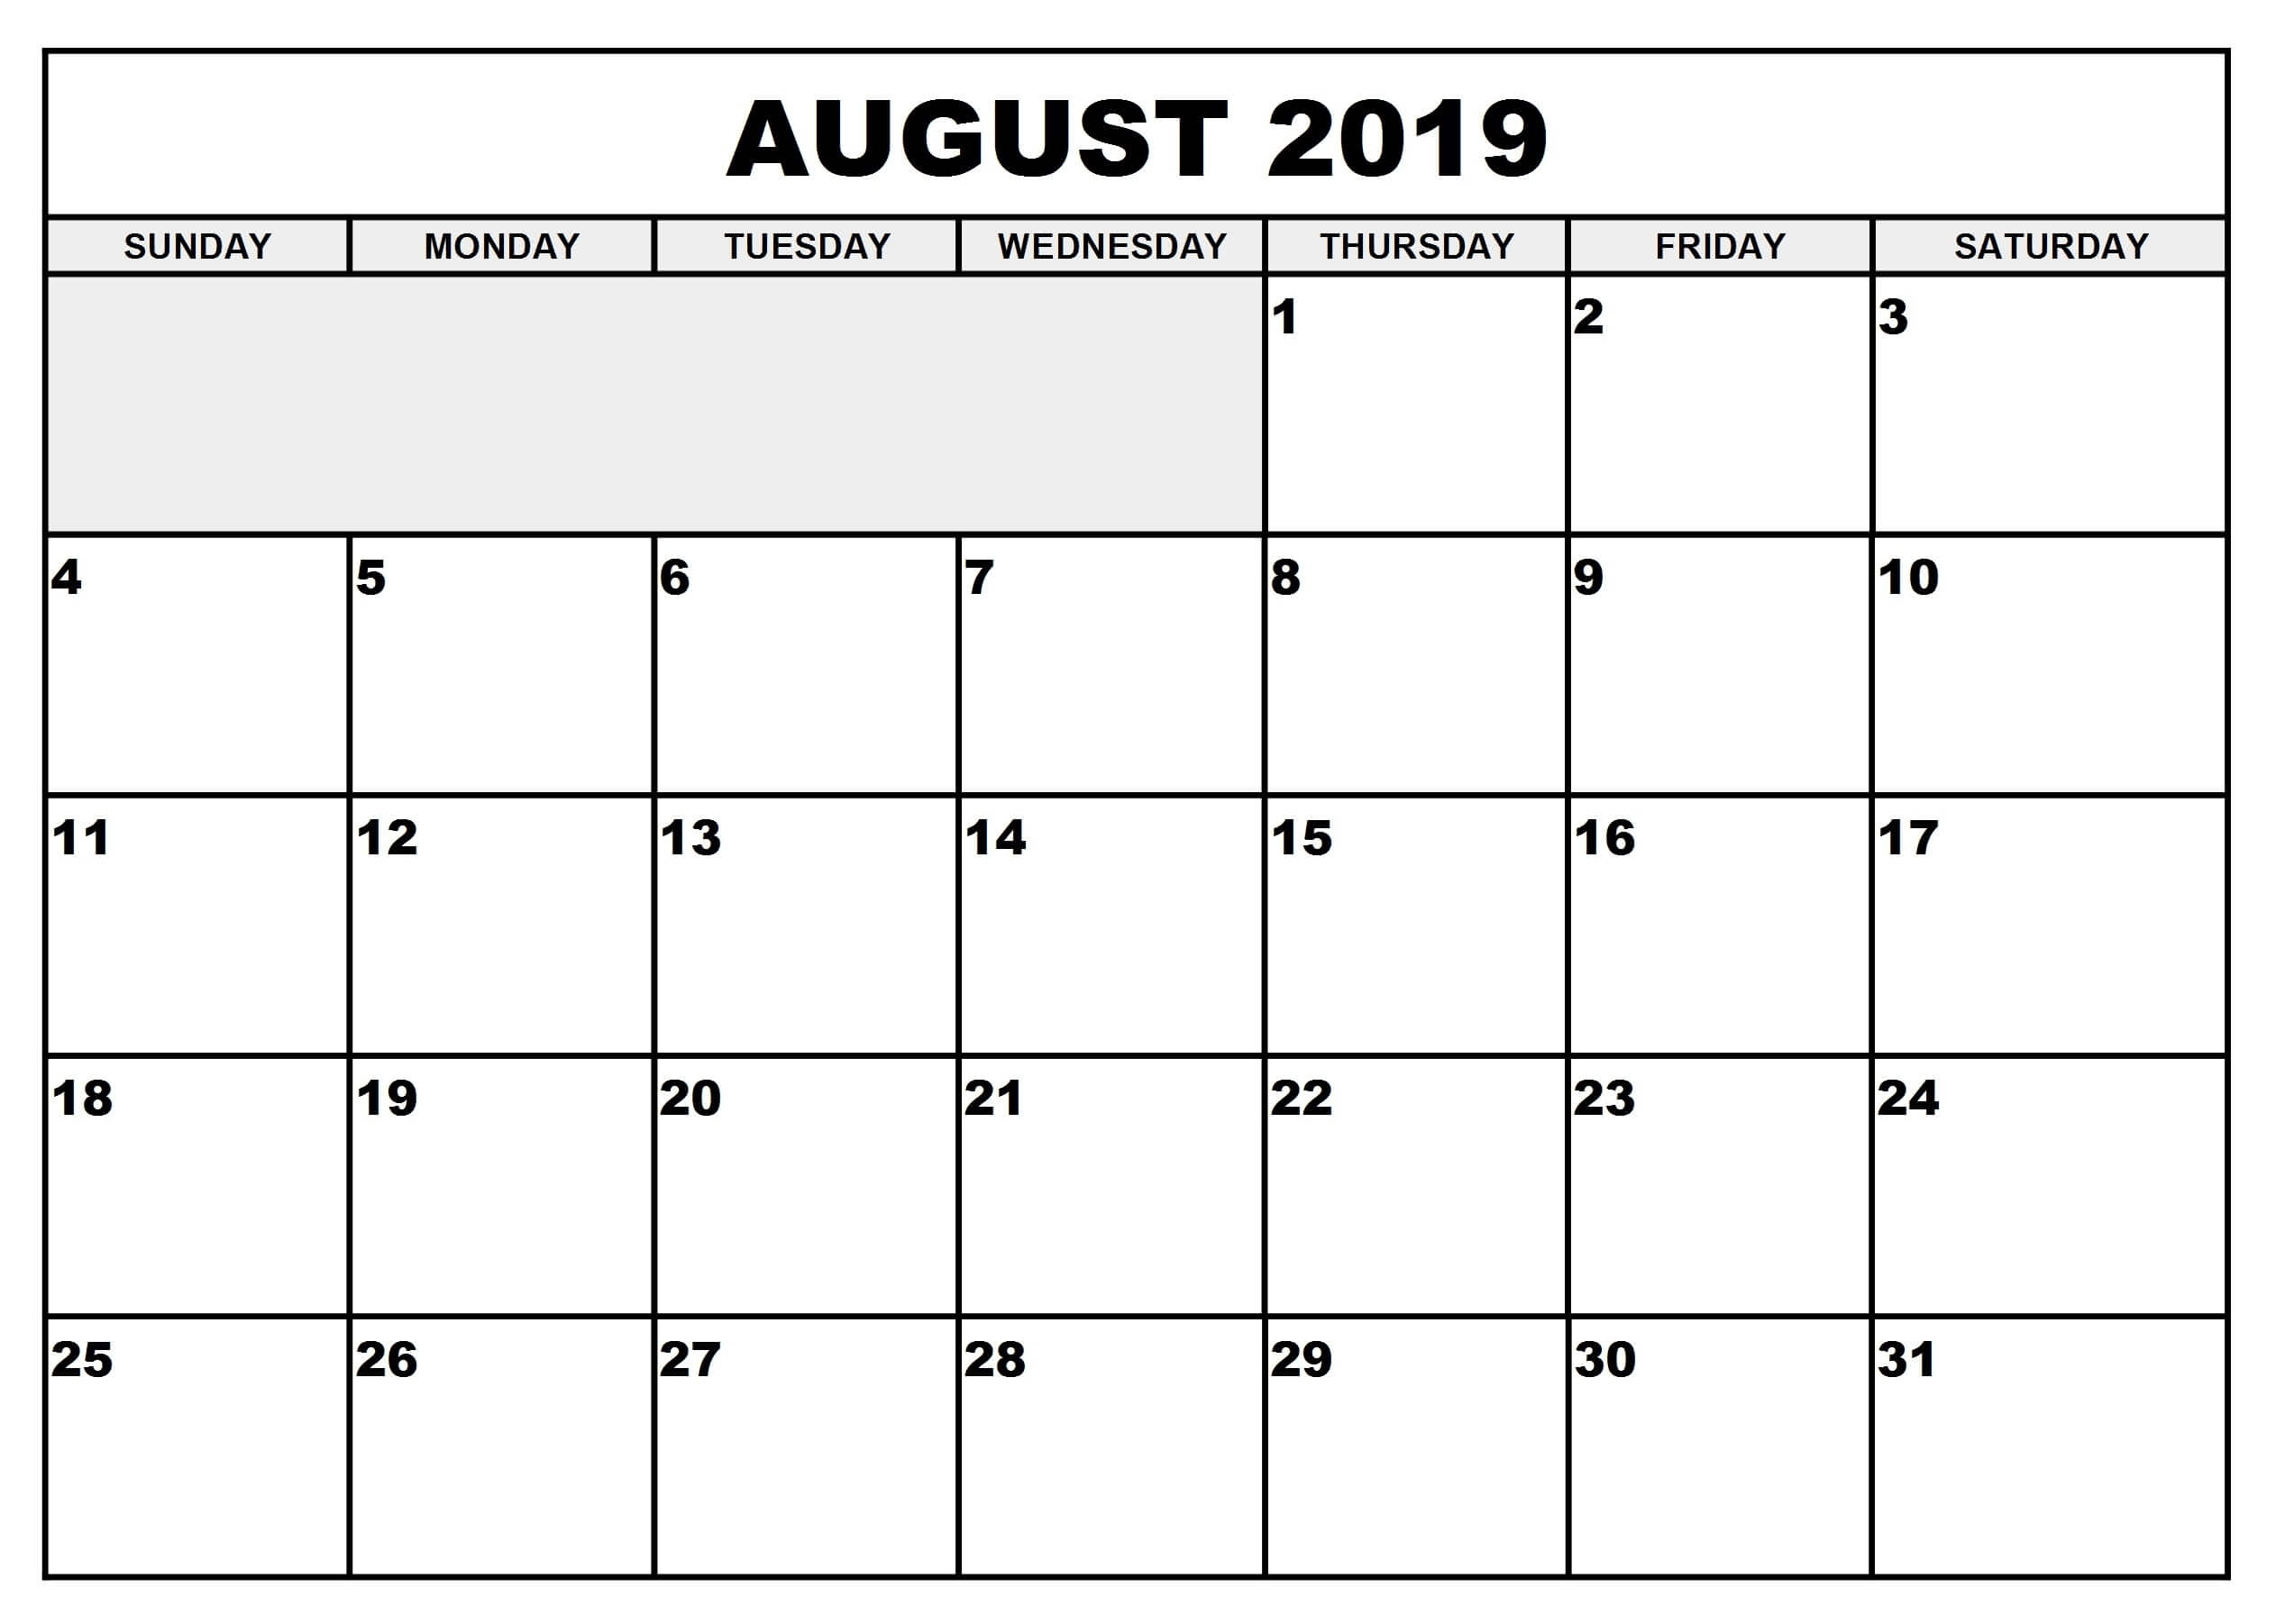 August 2019 Calendar With Holidays Malaysia - Printable Calendar throughout Blank Calender Of August